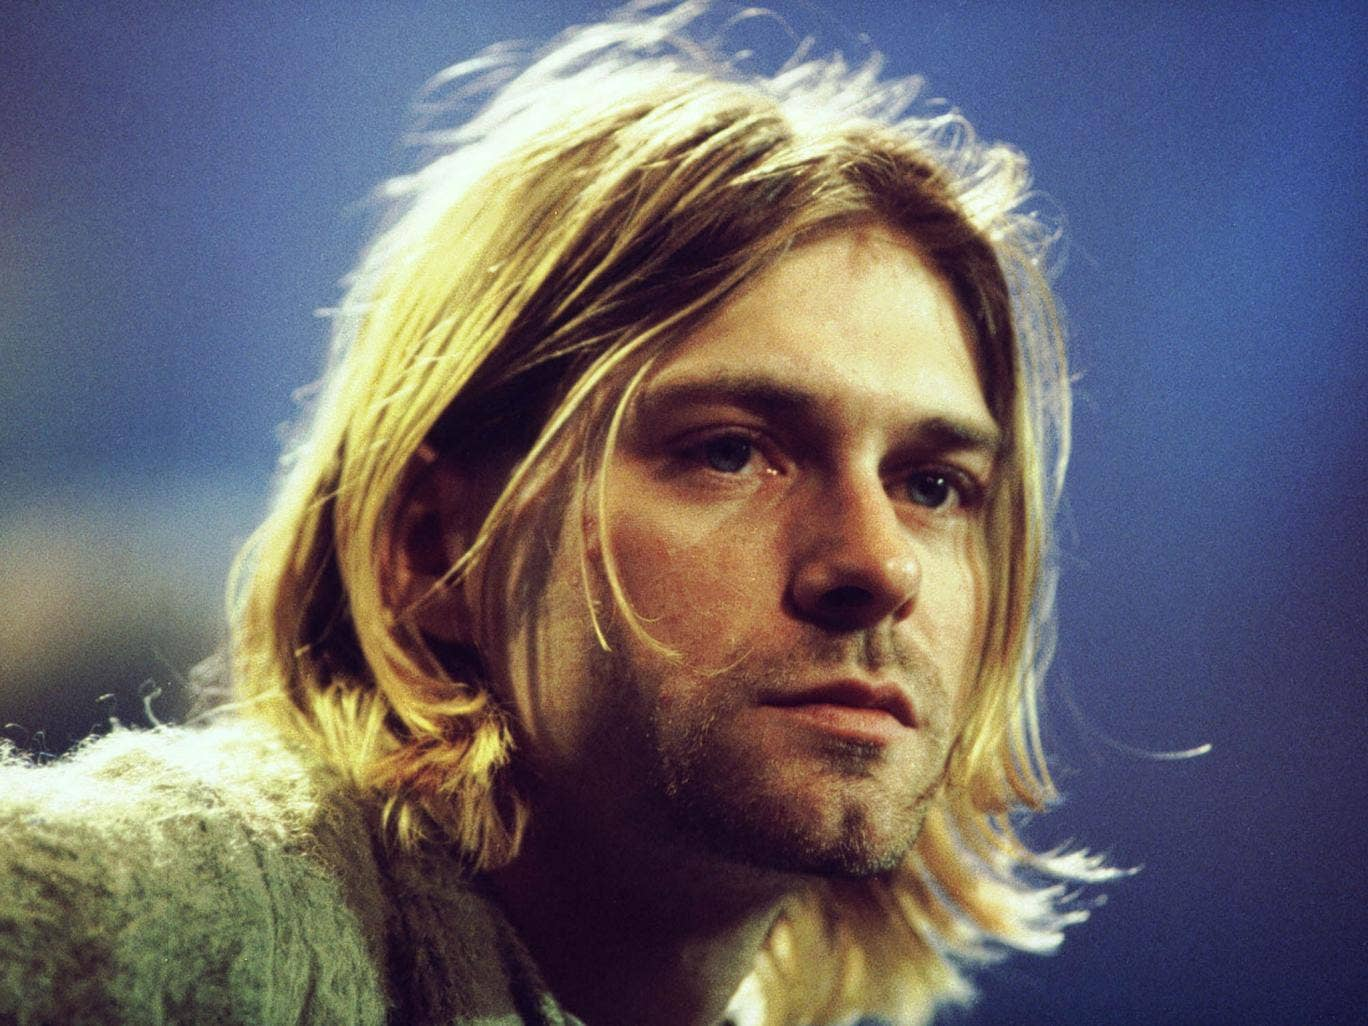 Kurt Cobain plays a gig with Nirvana in 1993, before his death the following year aged 27